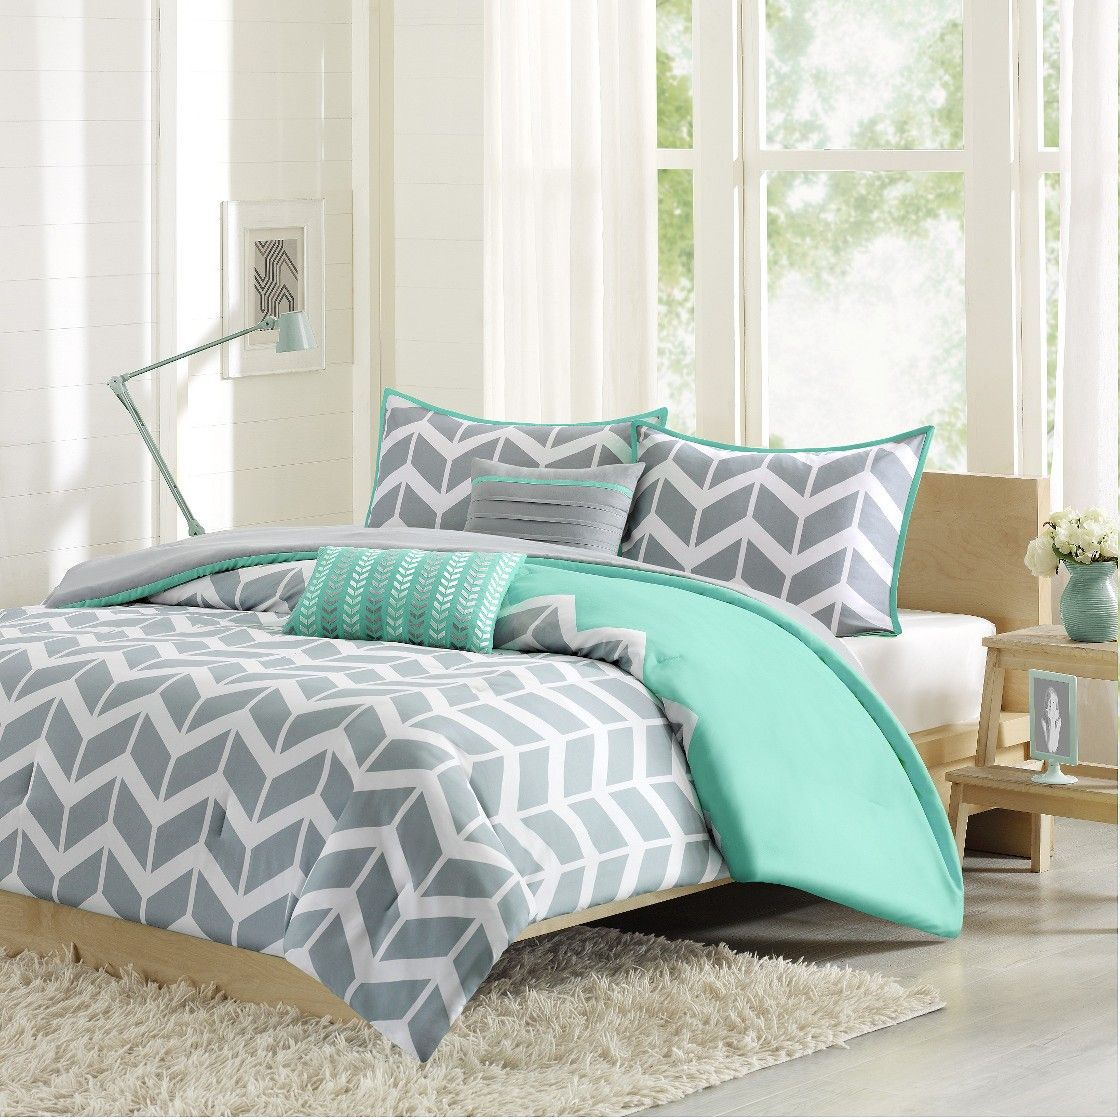 Teal And White Bedroom Glamorous Starting With This Teal Headset I Will Create A Beautiful Summer Decorating Design